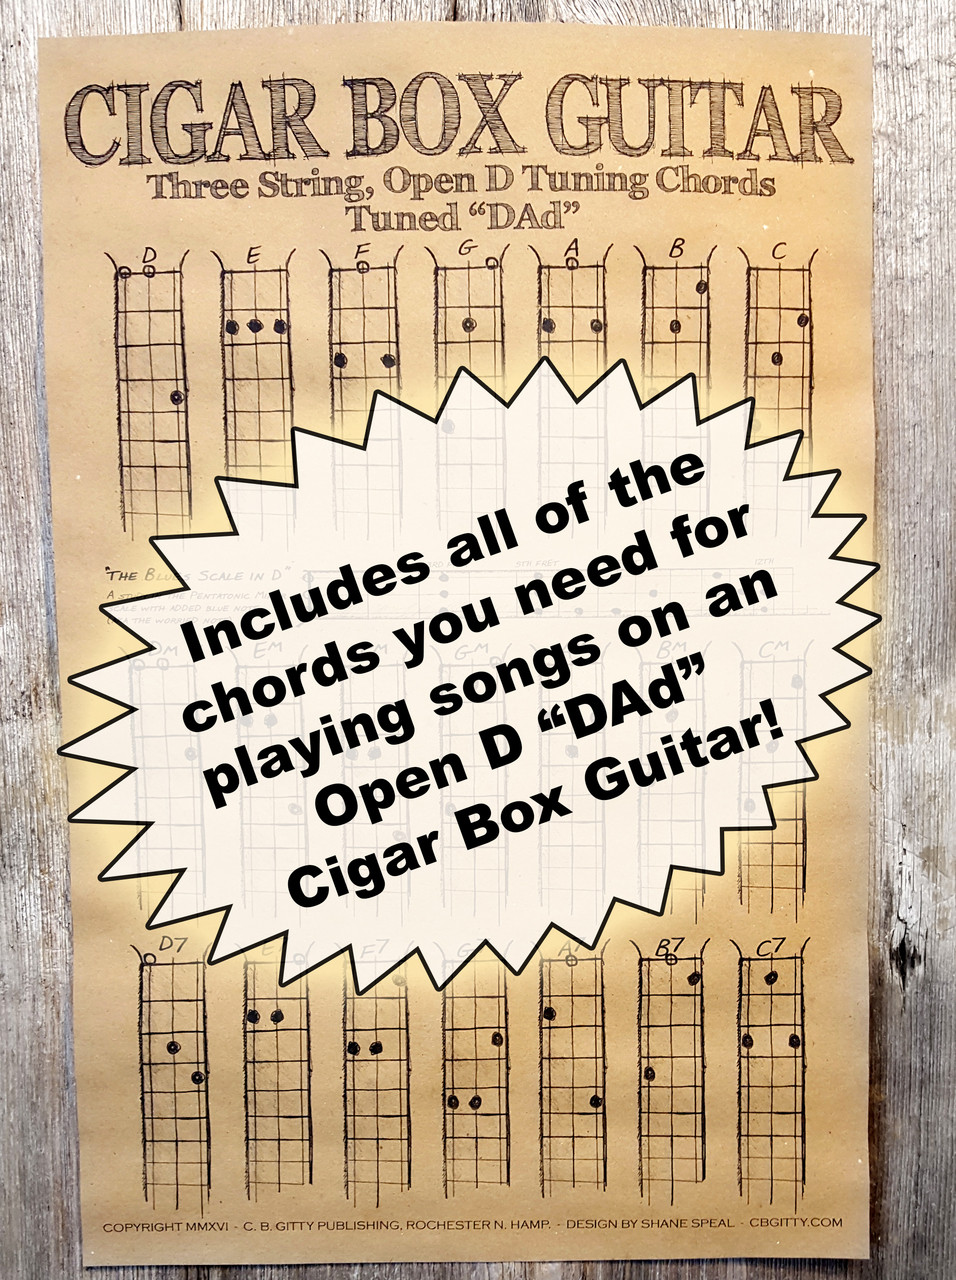 Open D Dad Chord Poster For 3 String Cigar Box Guitars Includes